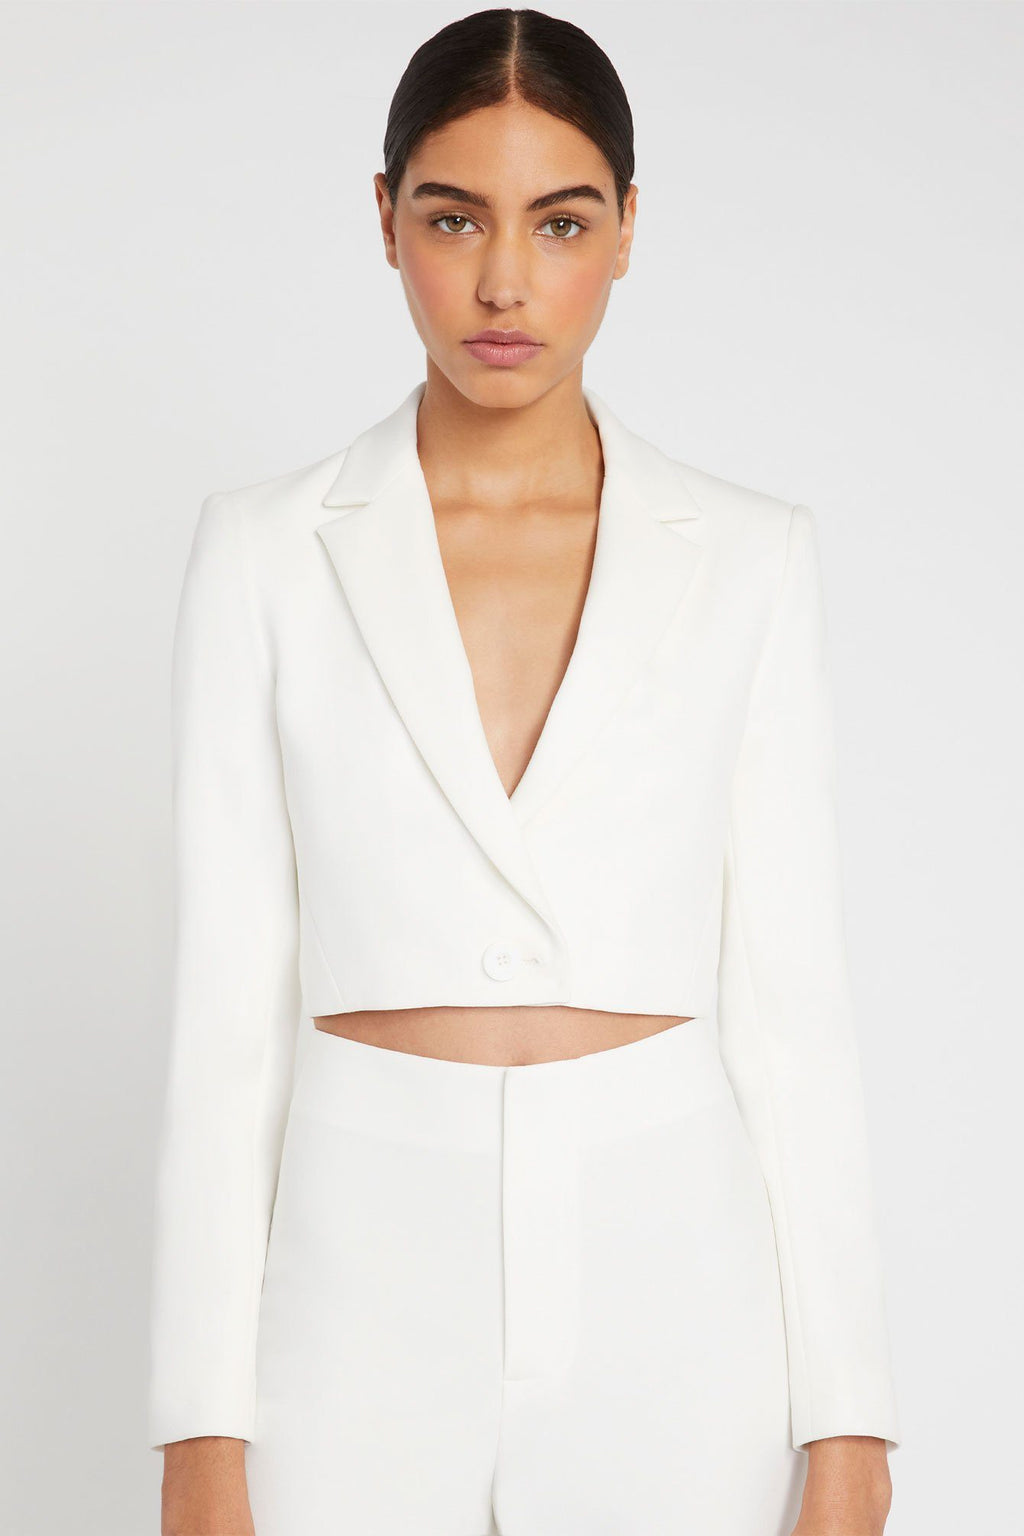 ALICE + OLIVIA | Macey Crop Notch Blazer - Off White